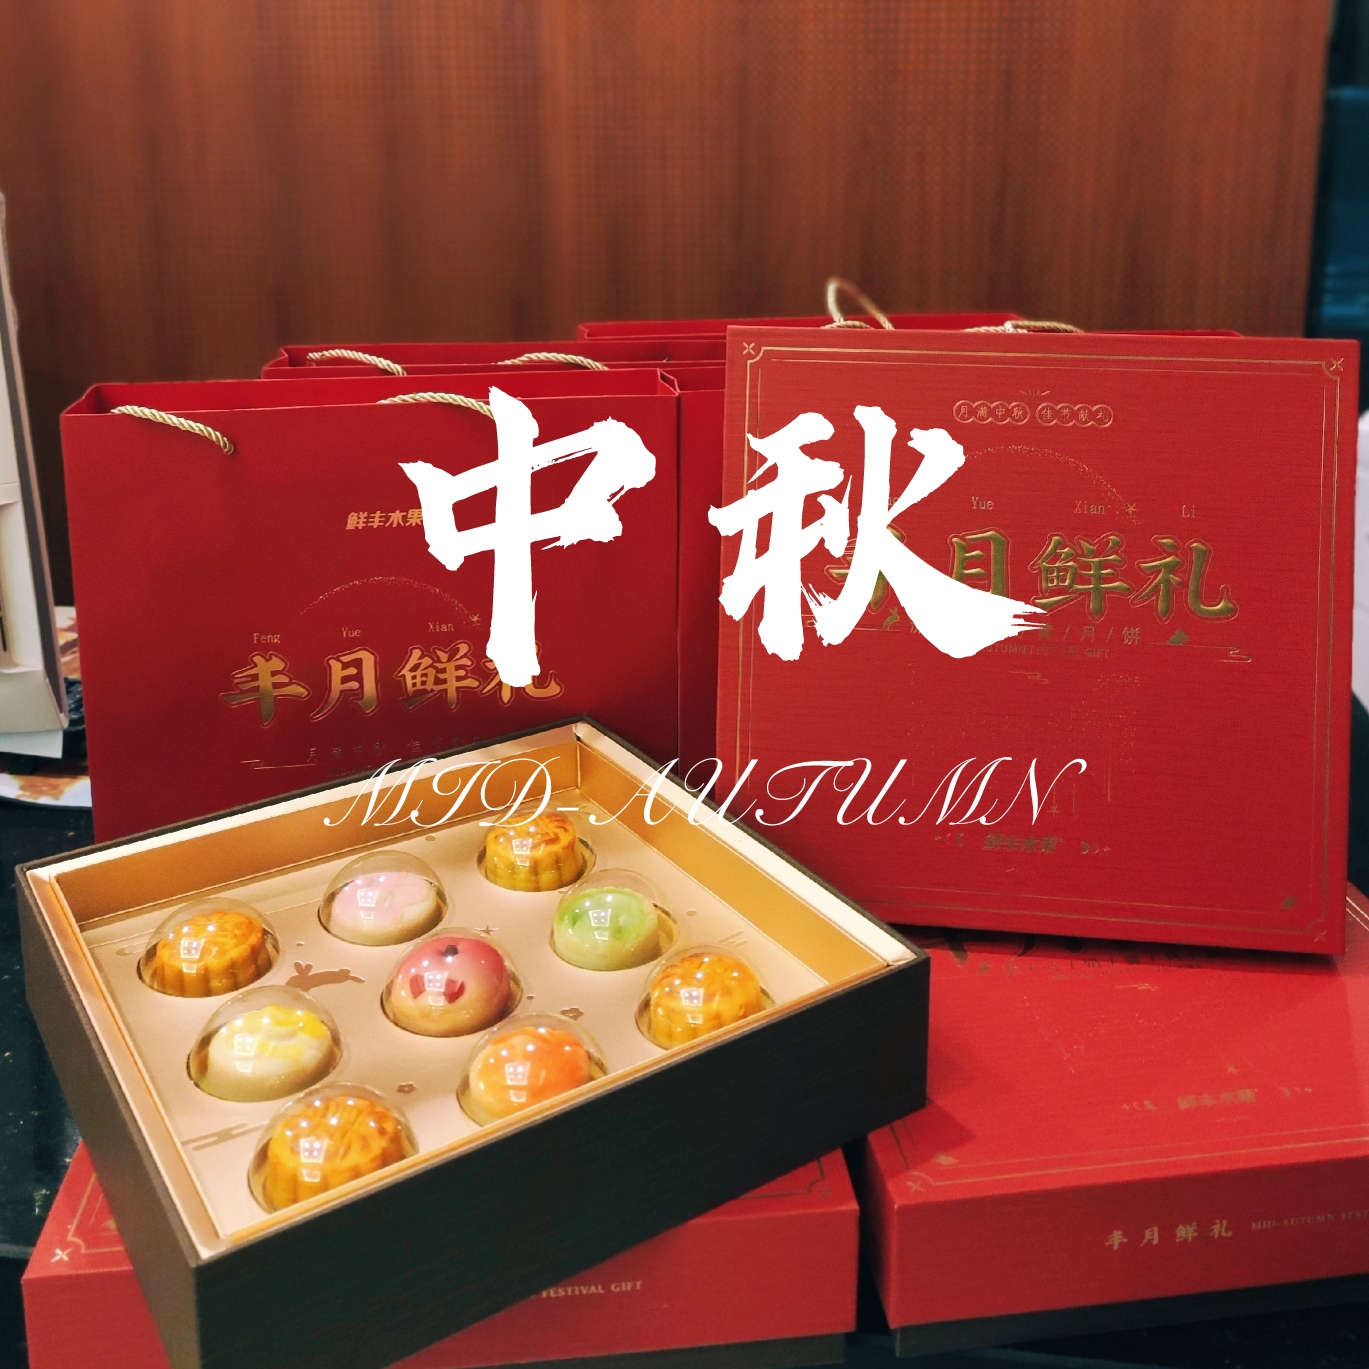 HOLIDAY NOTICE for the NATIONAL DAY AND the MID-AUTUMN FESTIVAL